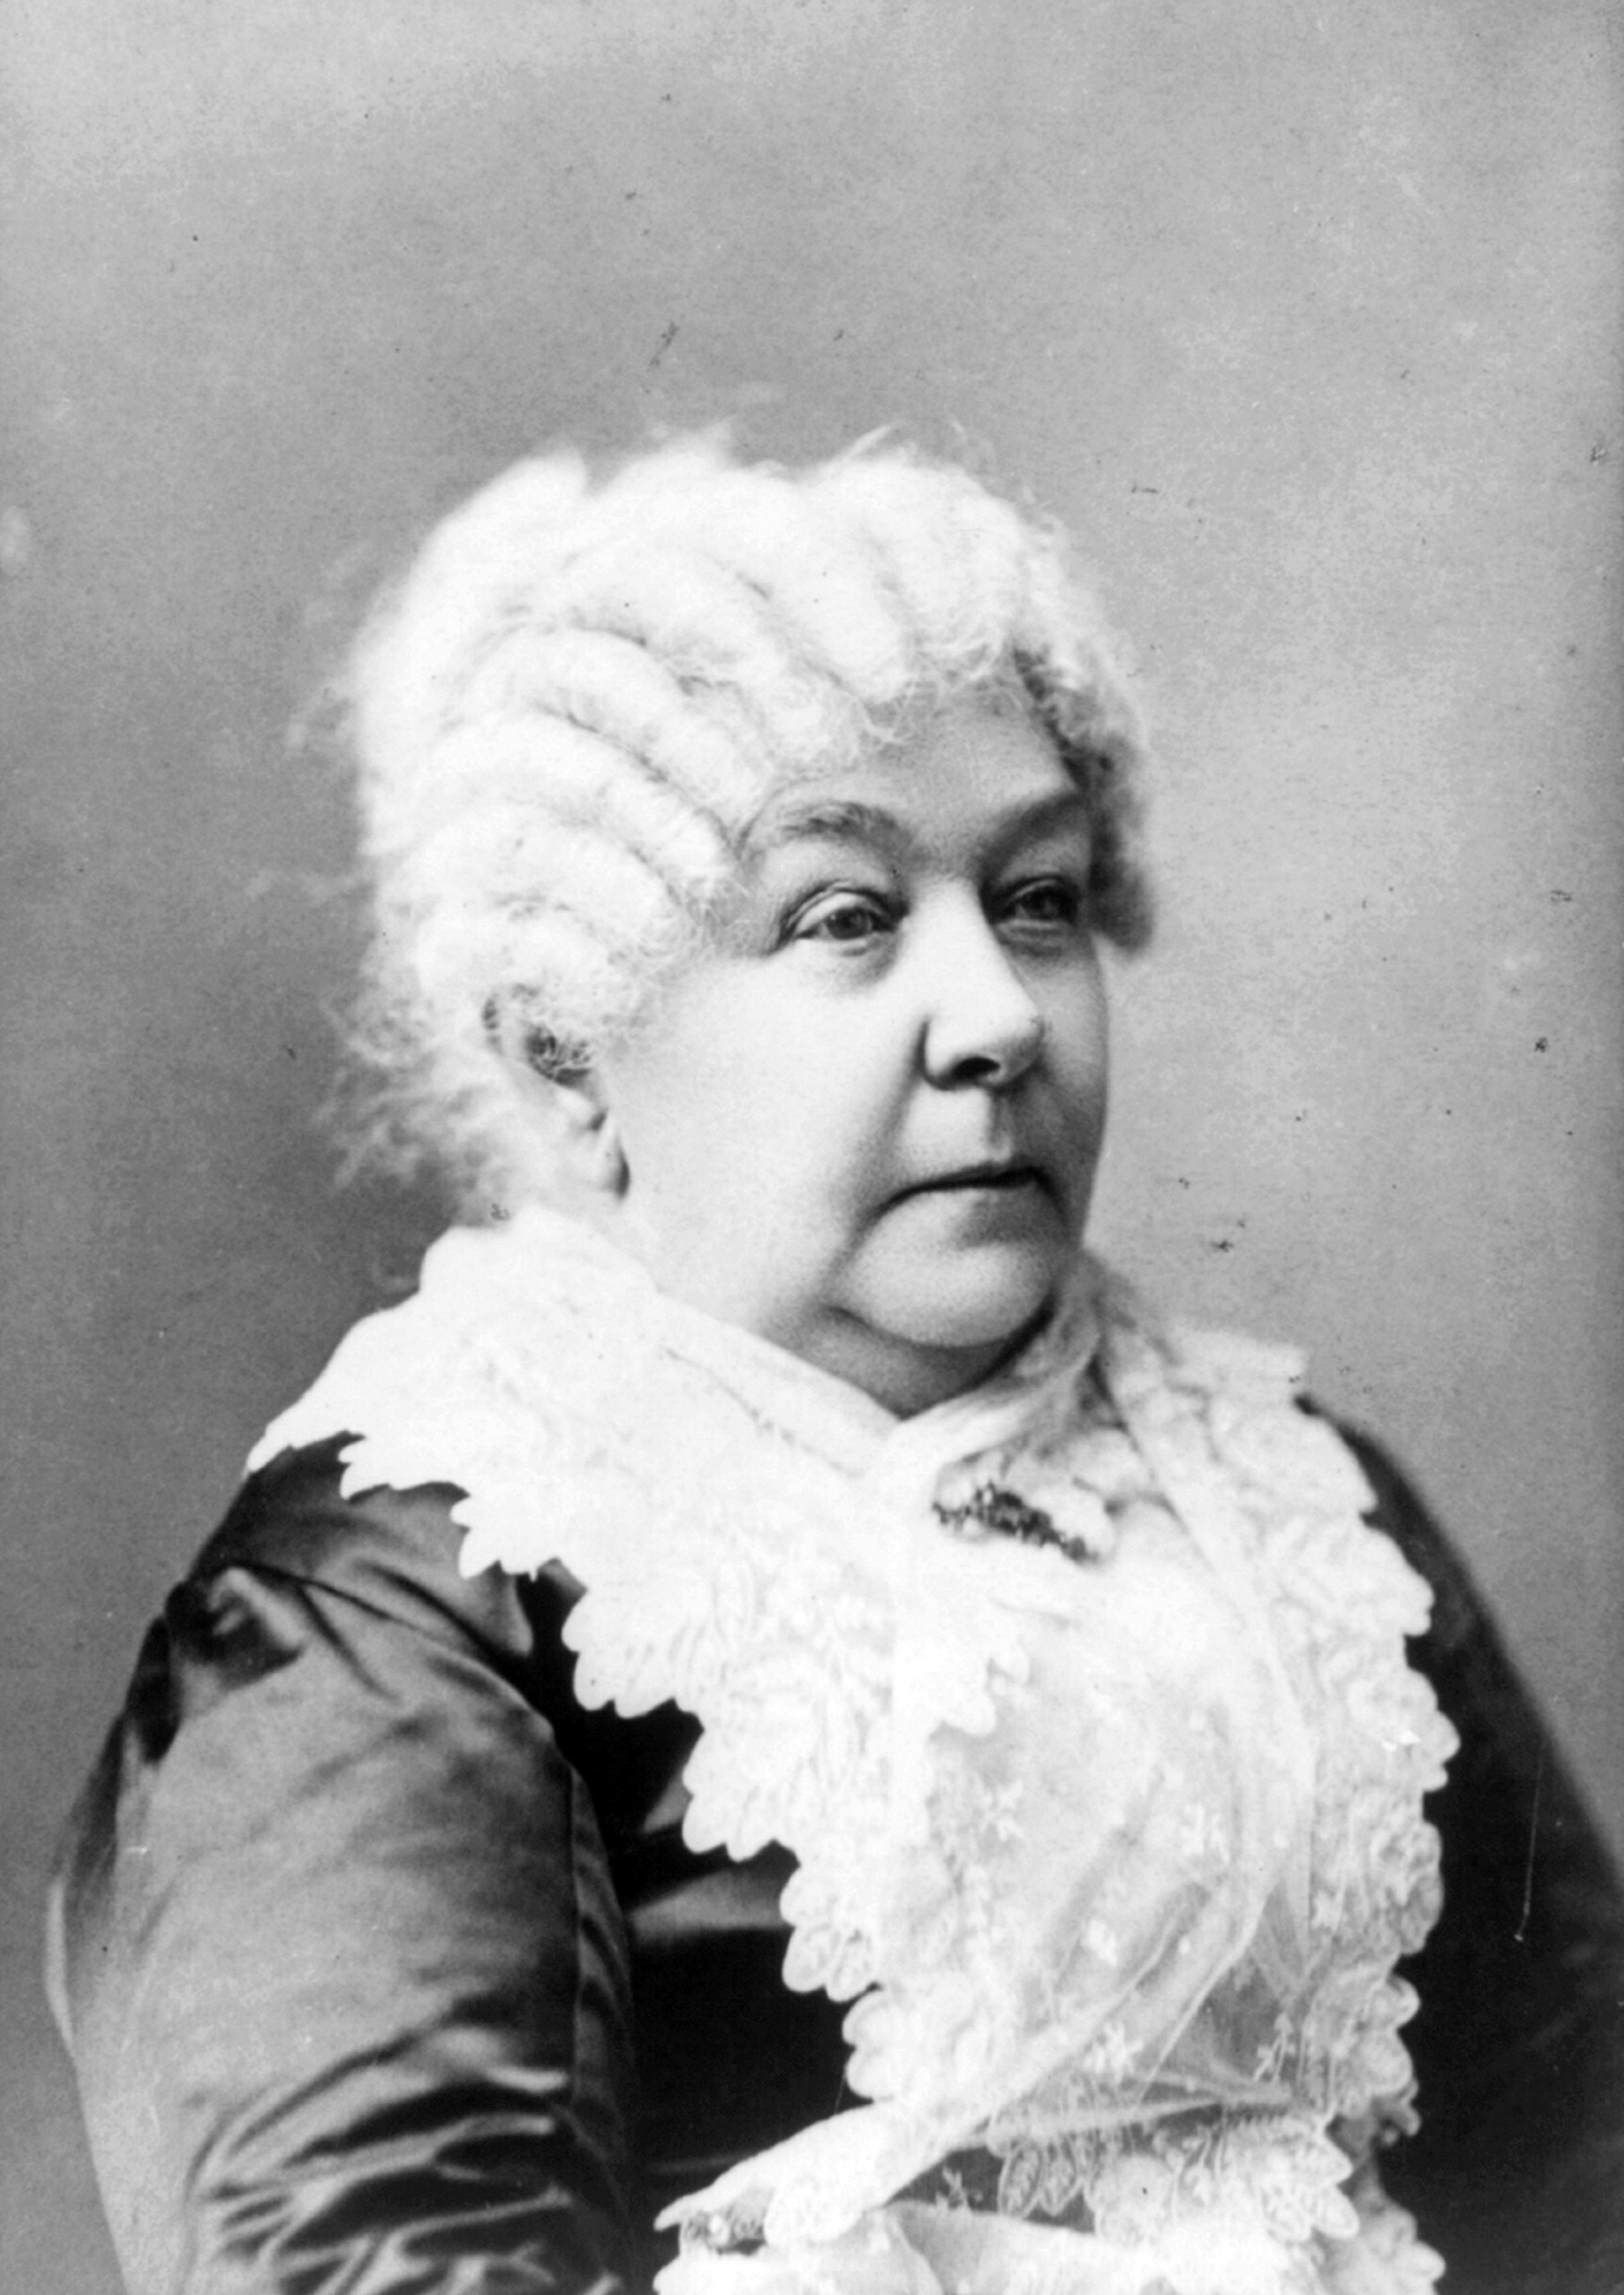 Elizabeth Cady Stanton (1815-1902), pictured in 1910.Stanton helped to organize the 1848 Women's Rights Convention at Seneca Falls and to write the Declaration of Sentiments, one of the founding documents of American women's rights.